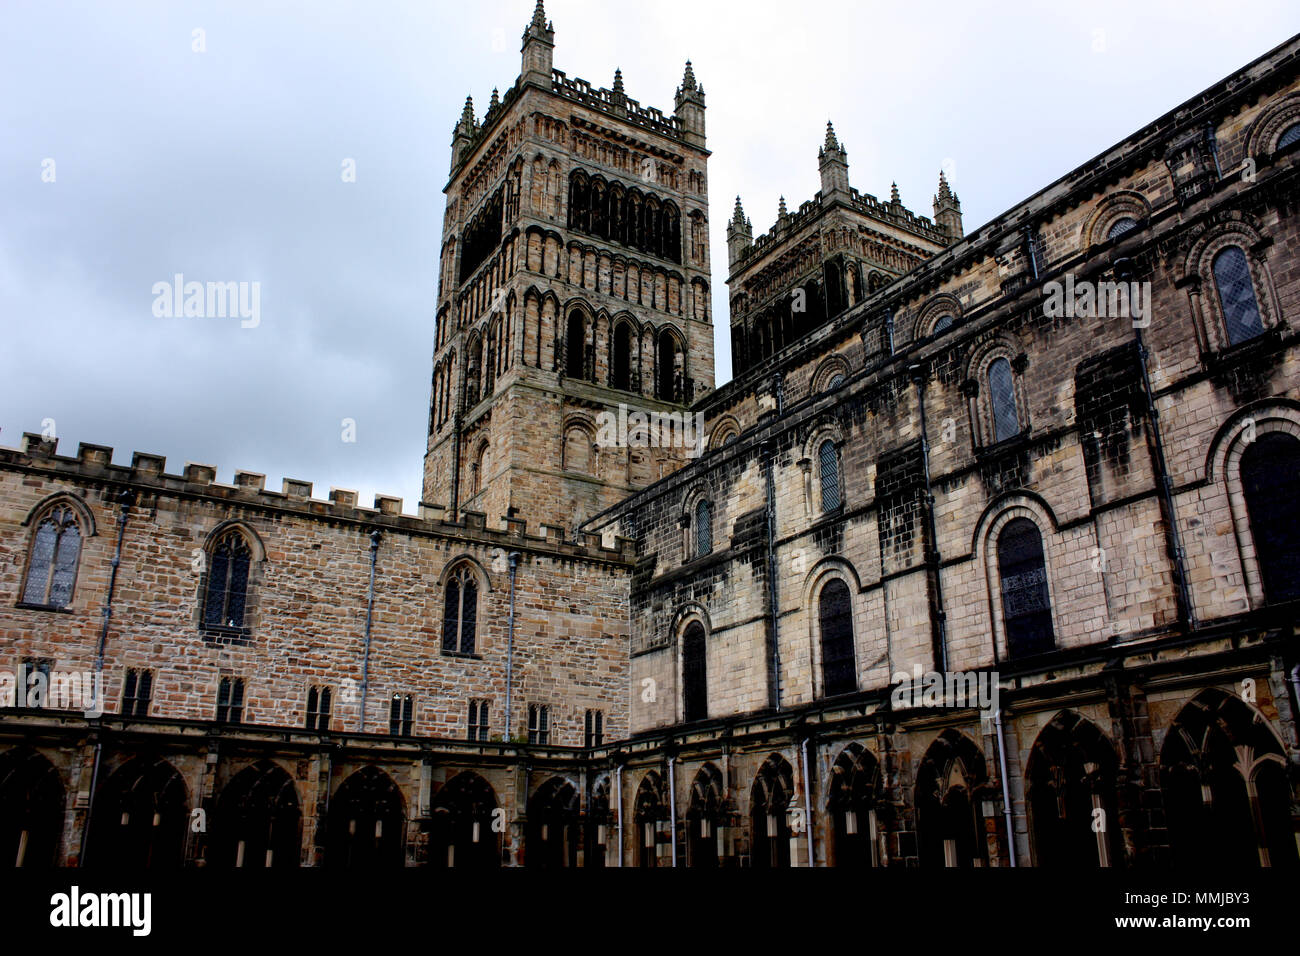 A view of Durham Cathedral taken from the cloisters at 5pm Stock Photo